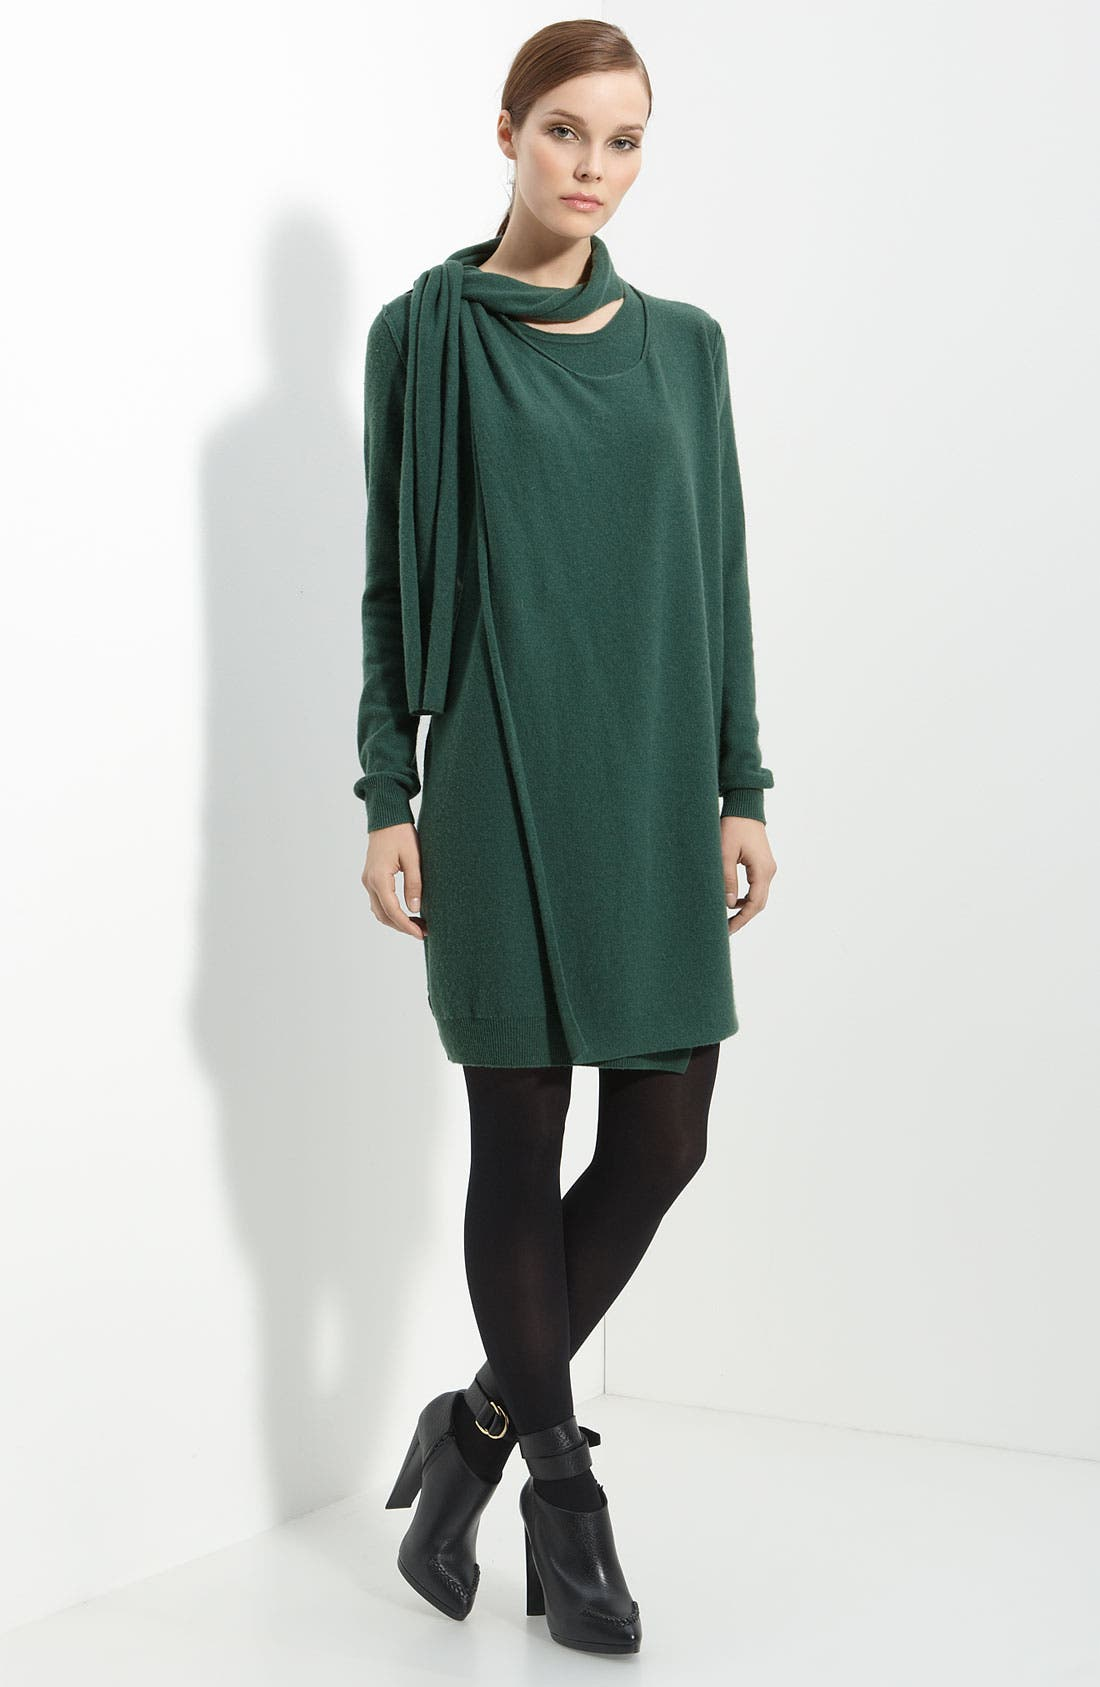 Main Image - 3.1 Phillip Lim Layered Cashmere Dress with Scarf